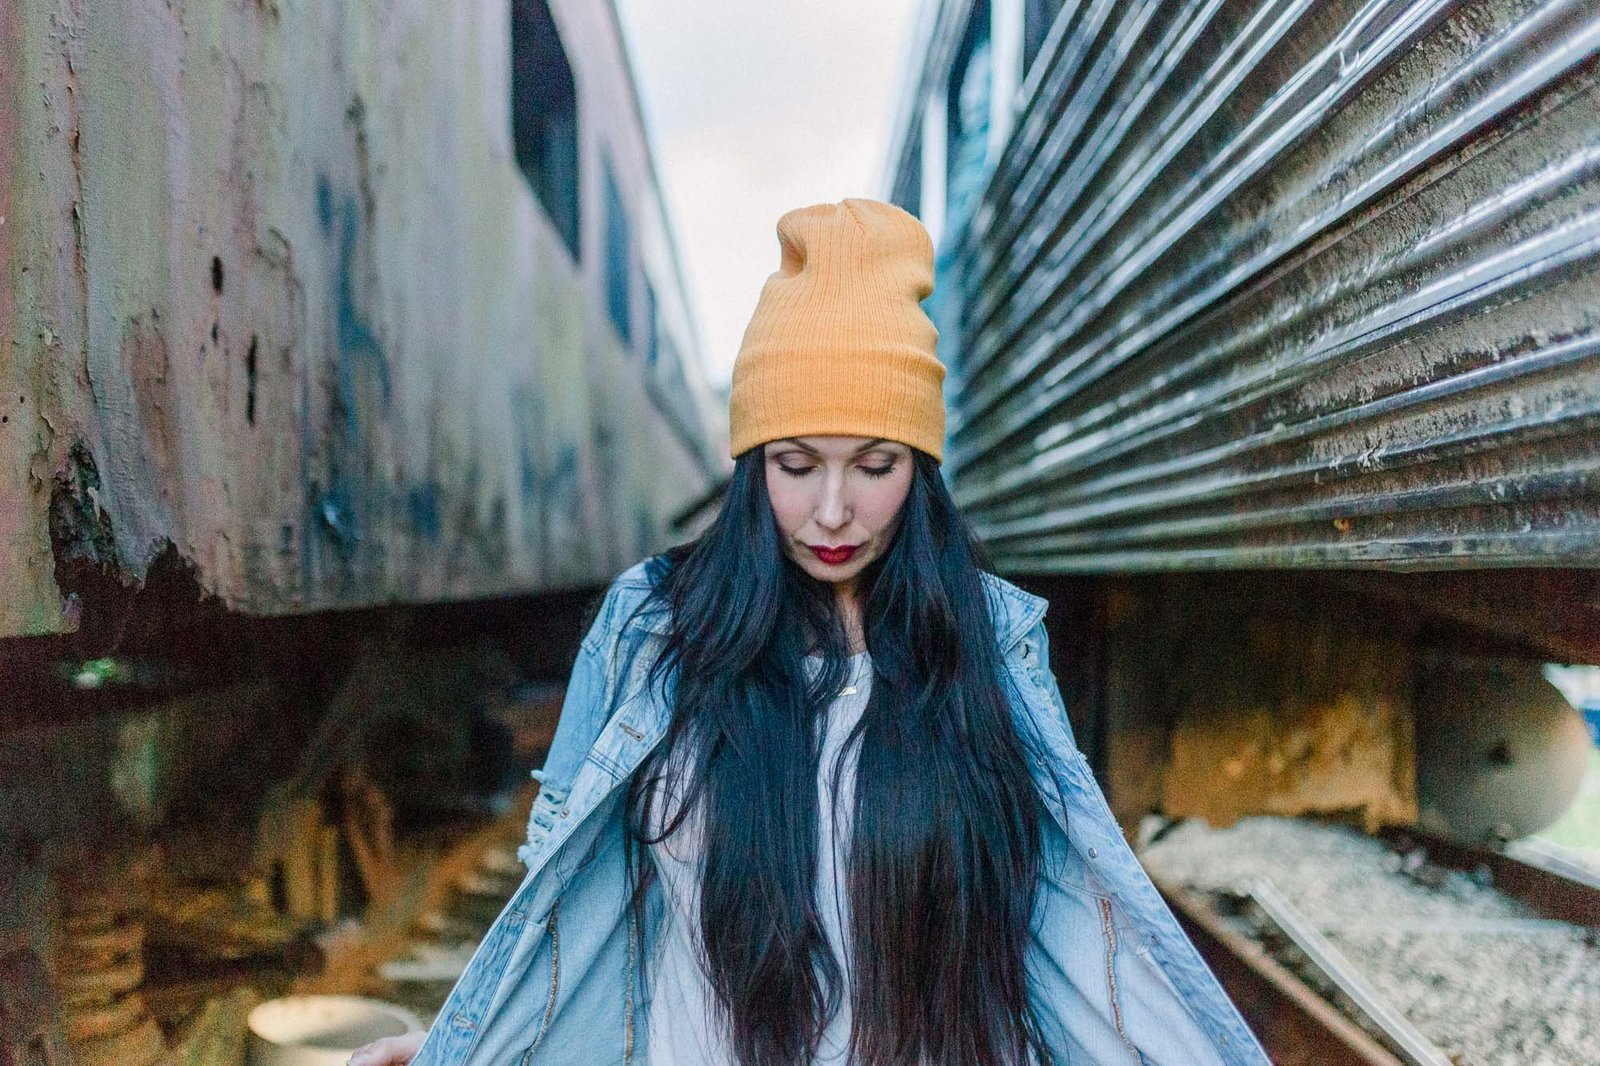 Walking through the train cars captured by Staci Addison Photography